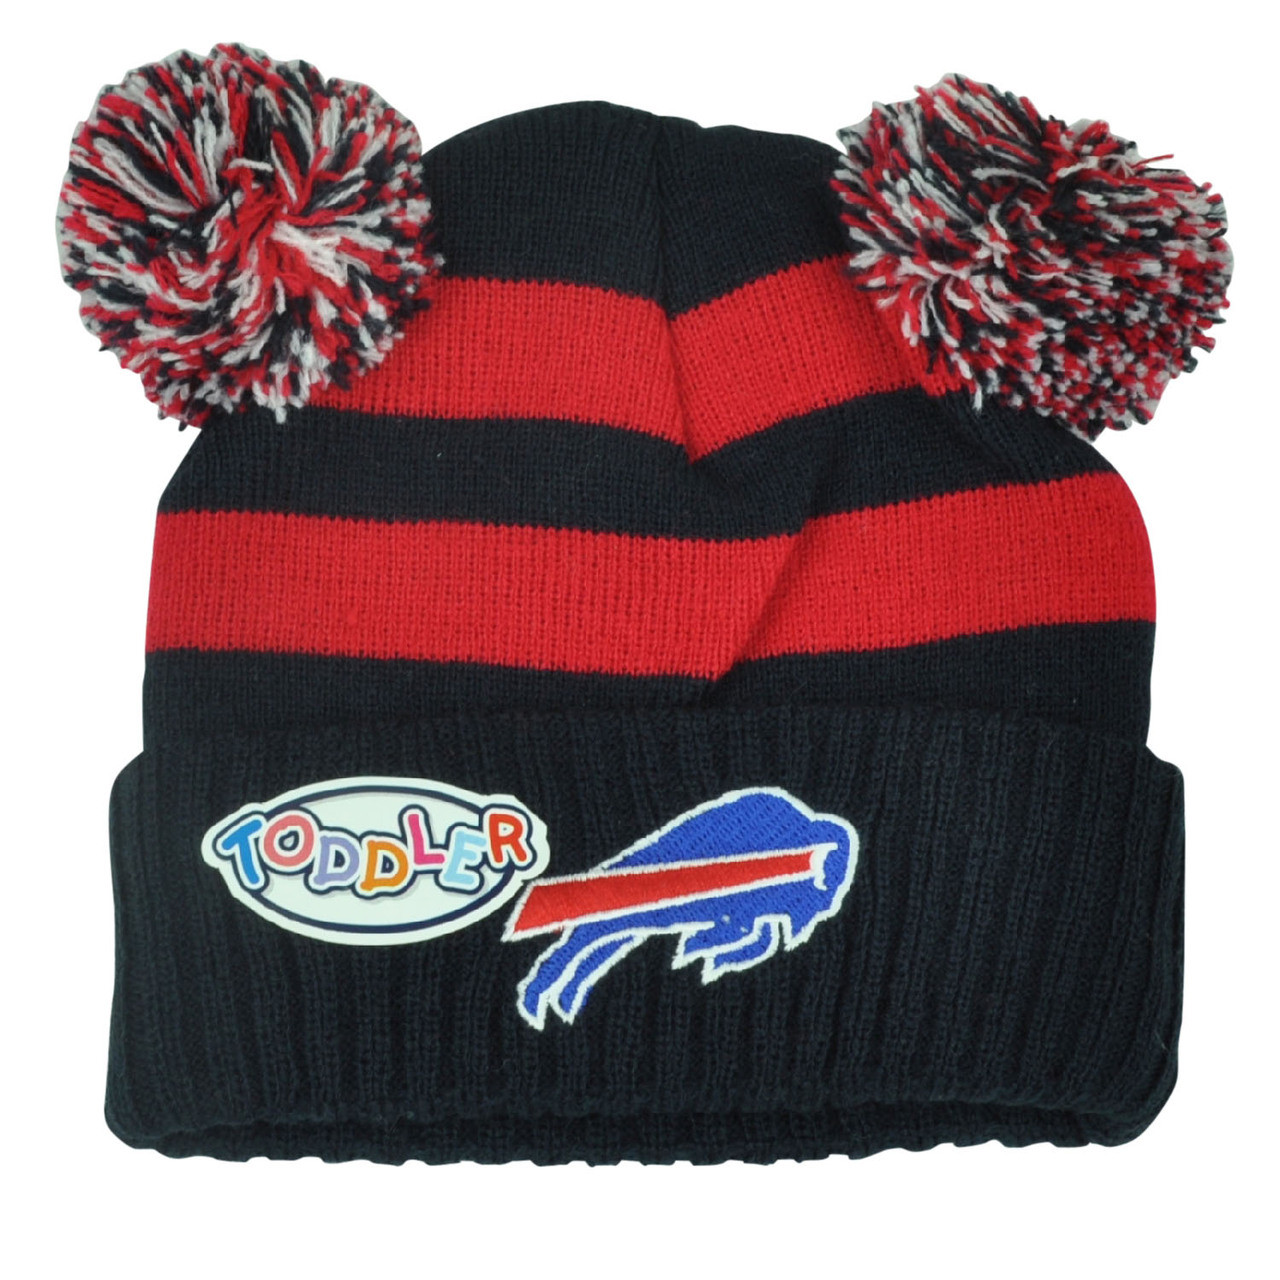 ccd2c91630f NFL Buffalo Bills Pom Pom Ear Cuffed Toddler Striped Knit Beanie ...